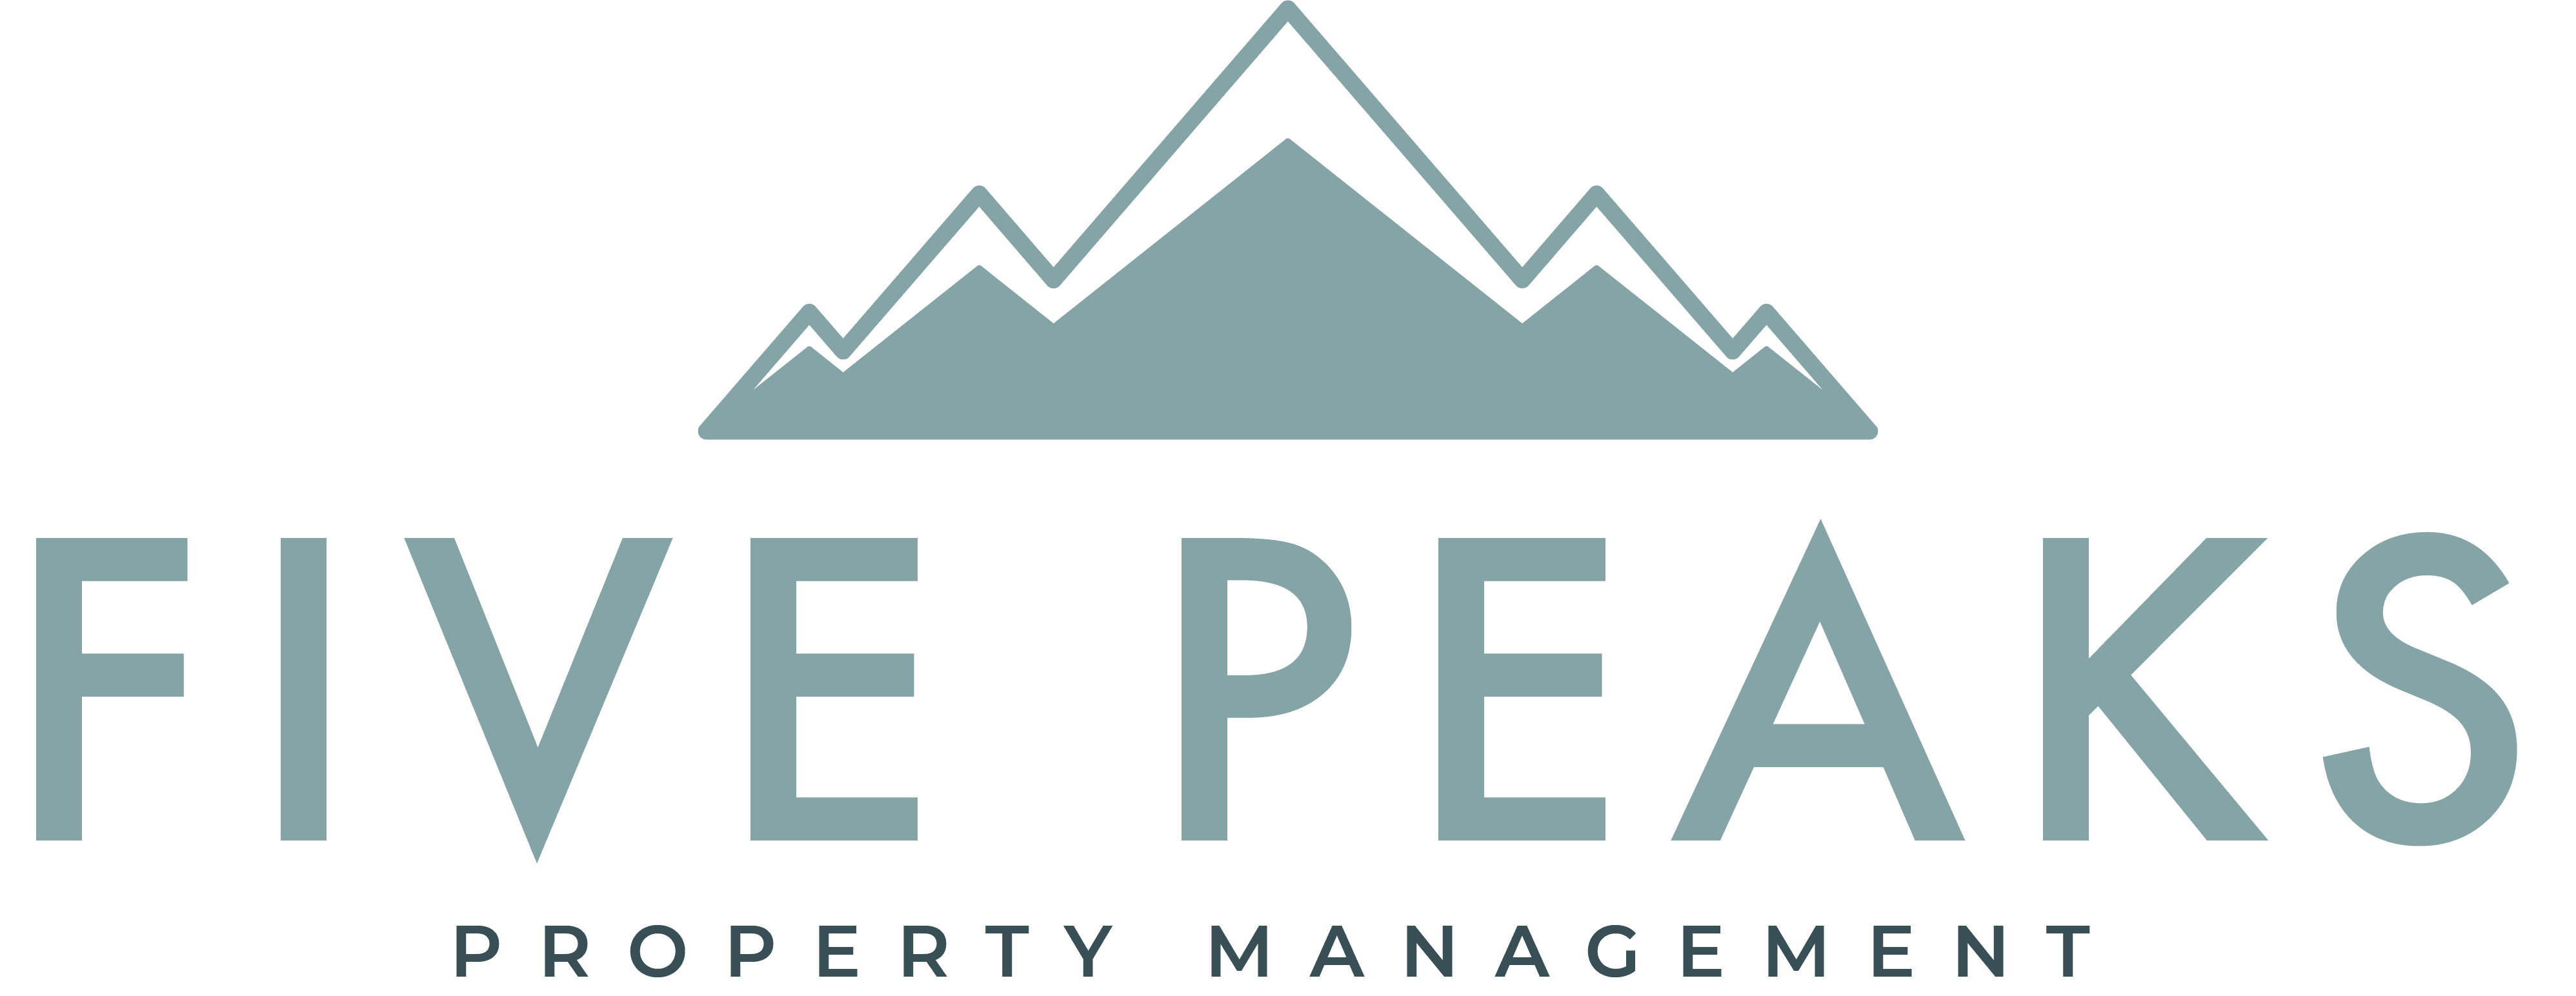 Five Peaks Property Management